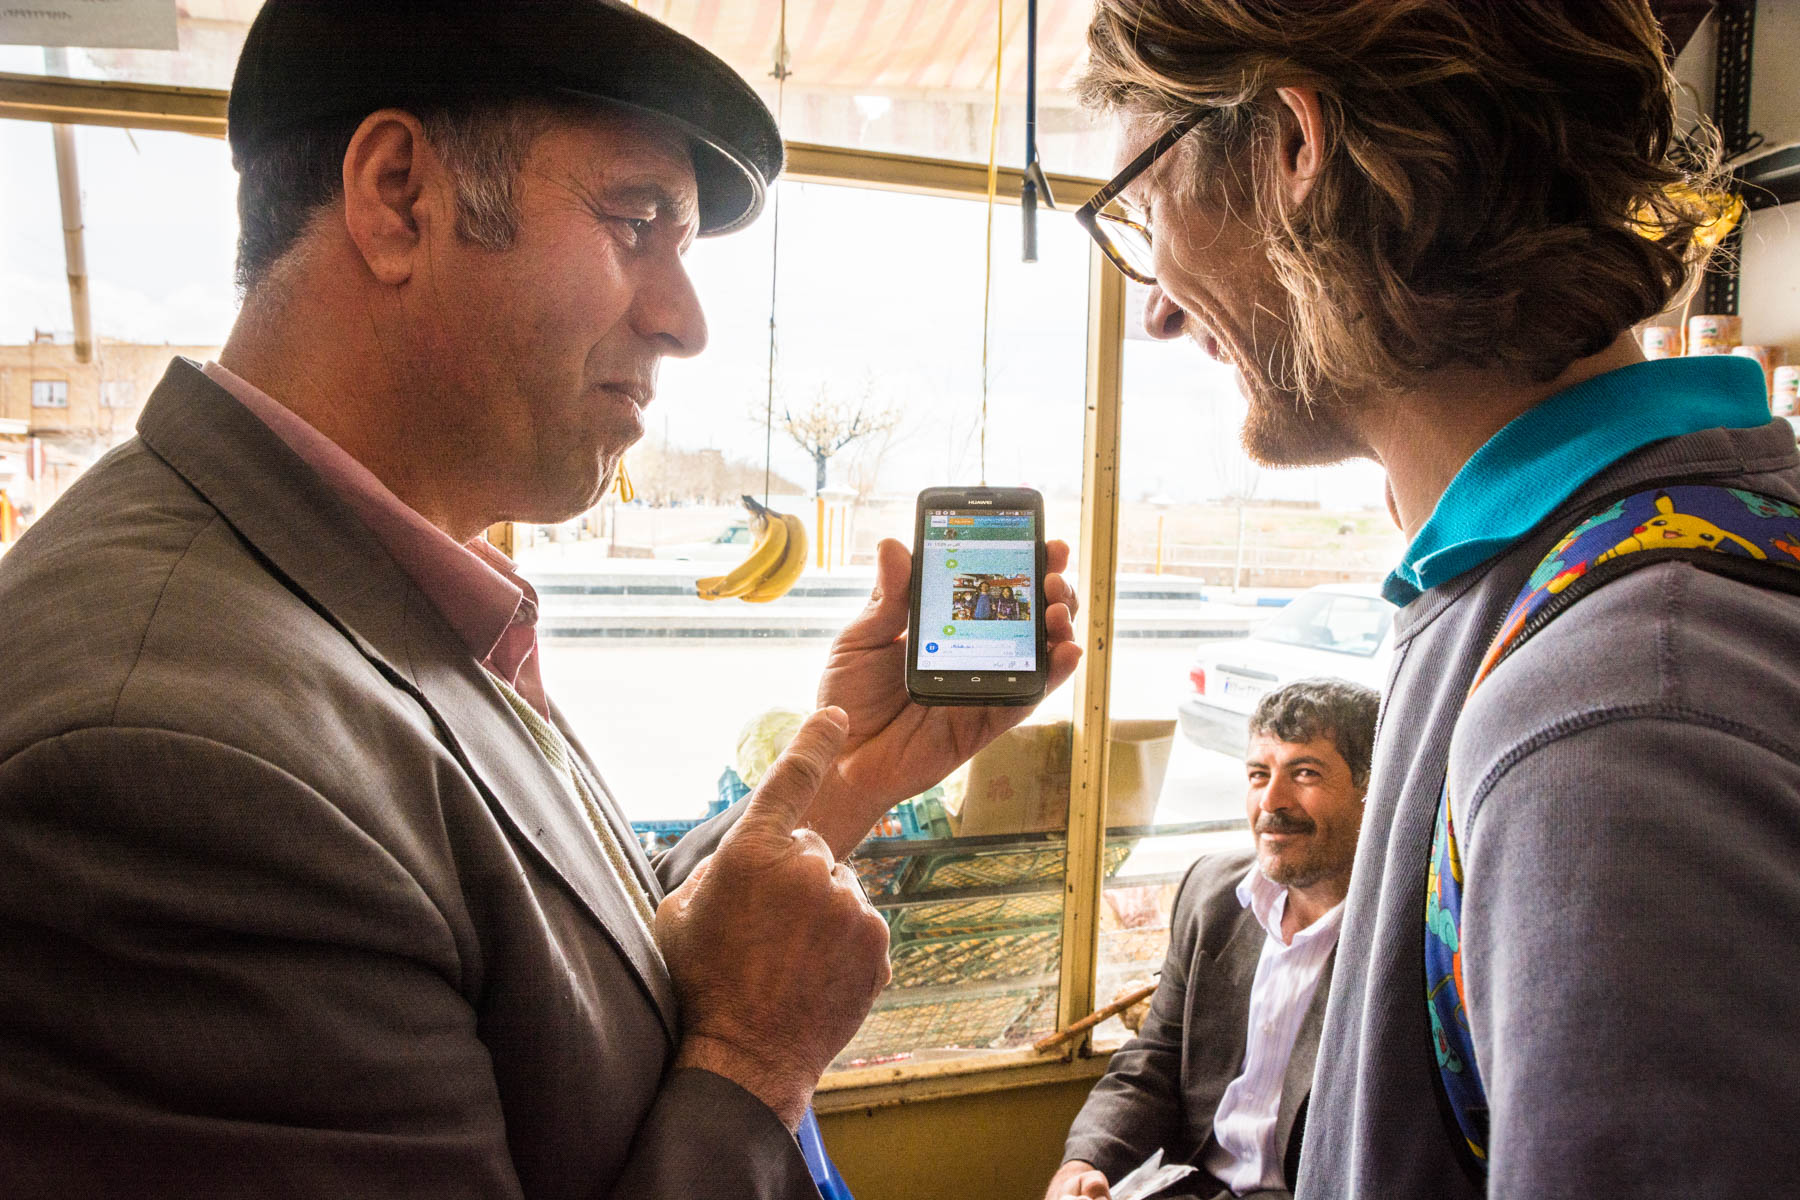 Using Whatsapp to communicate with a man in Soltaniyeh, Iran